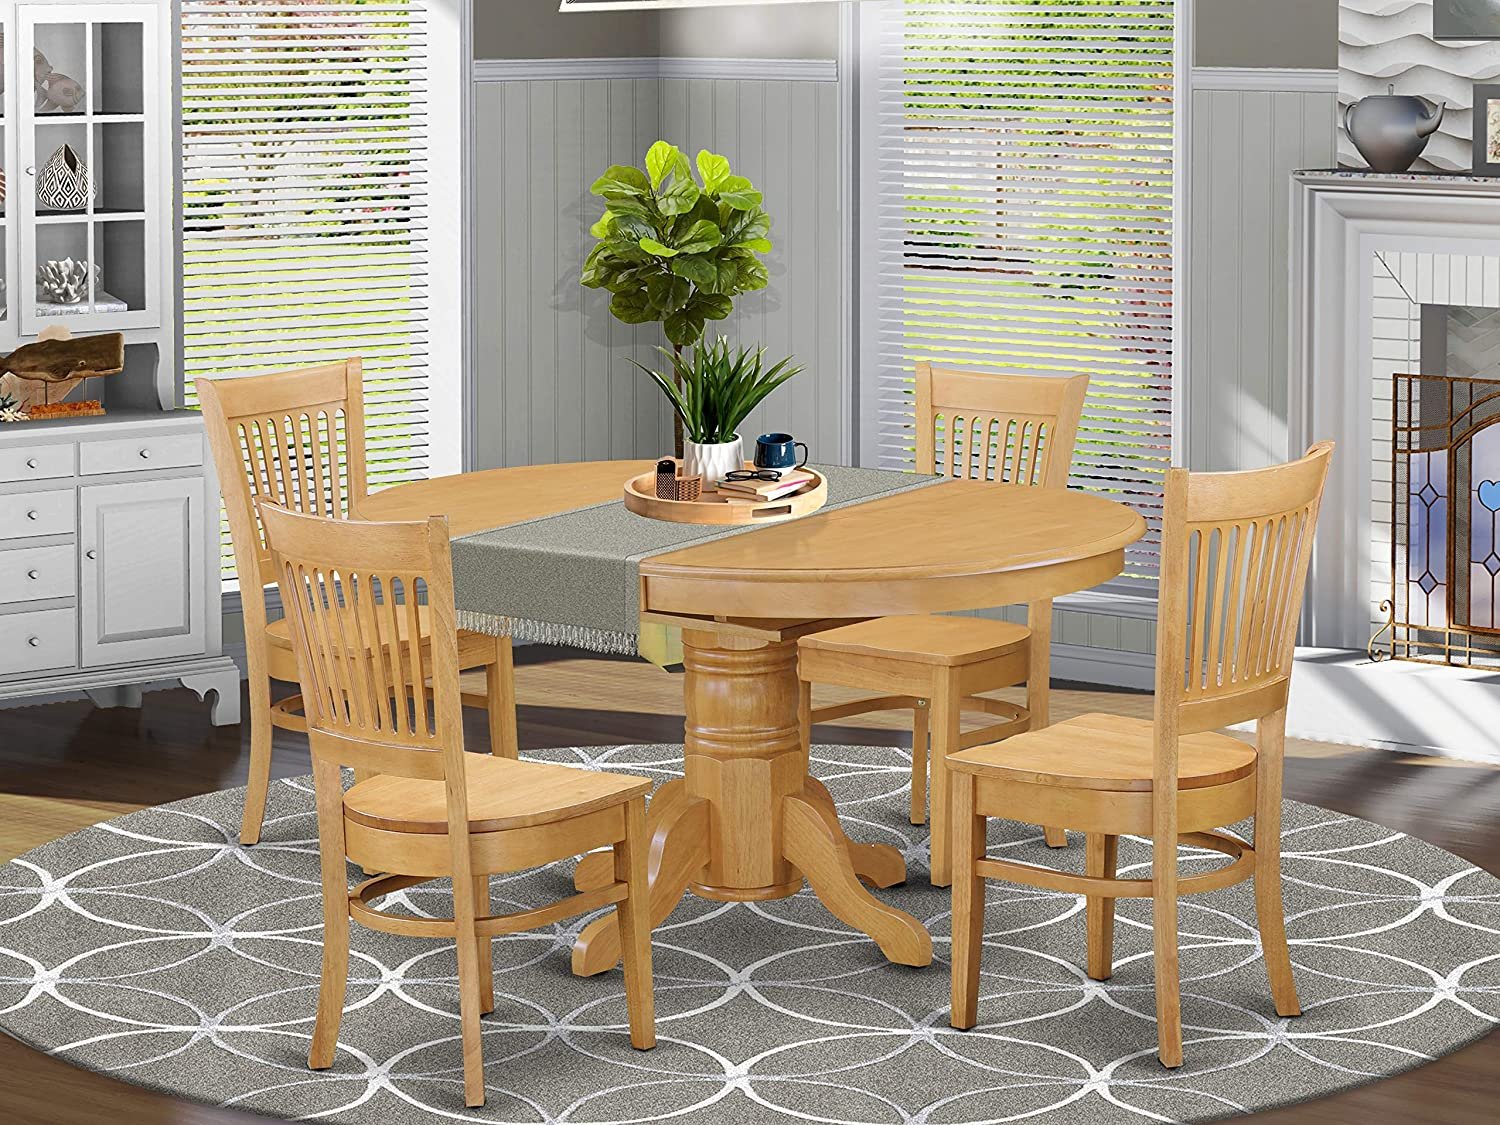 Amazon Com East West Furniture Kitchen Table Set 4 Wonderful Dining Room Chairs A Wonderful Round Wooden Dining Table Oak Color Wooden Seat Oak Butterfly Leaf Dining Room Table Furniture Decor